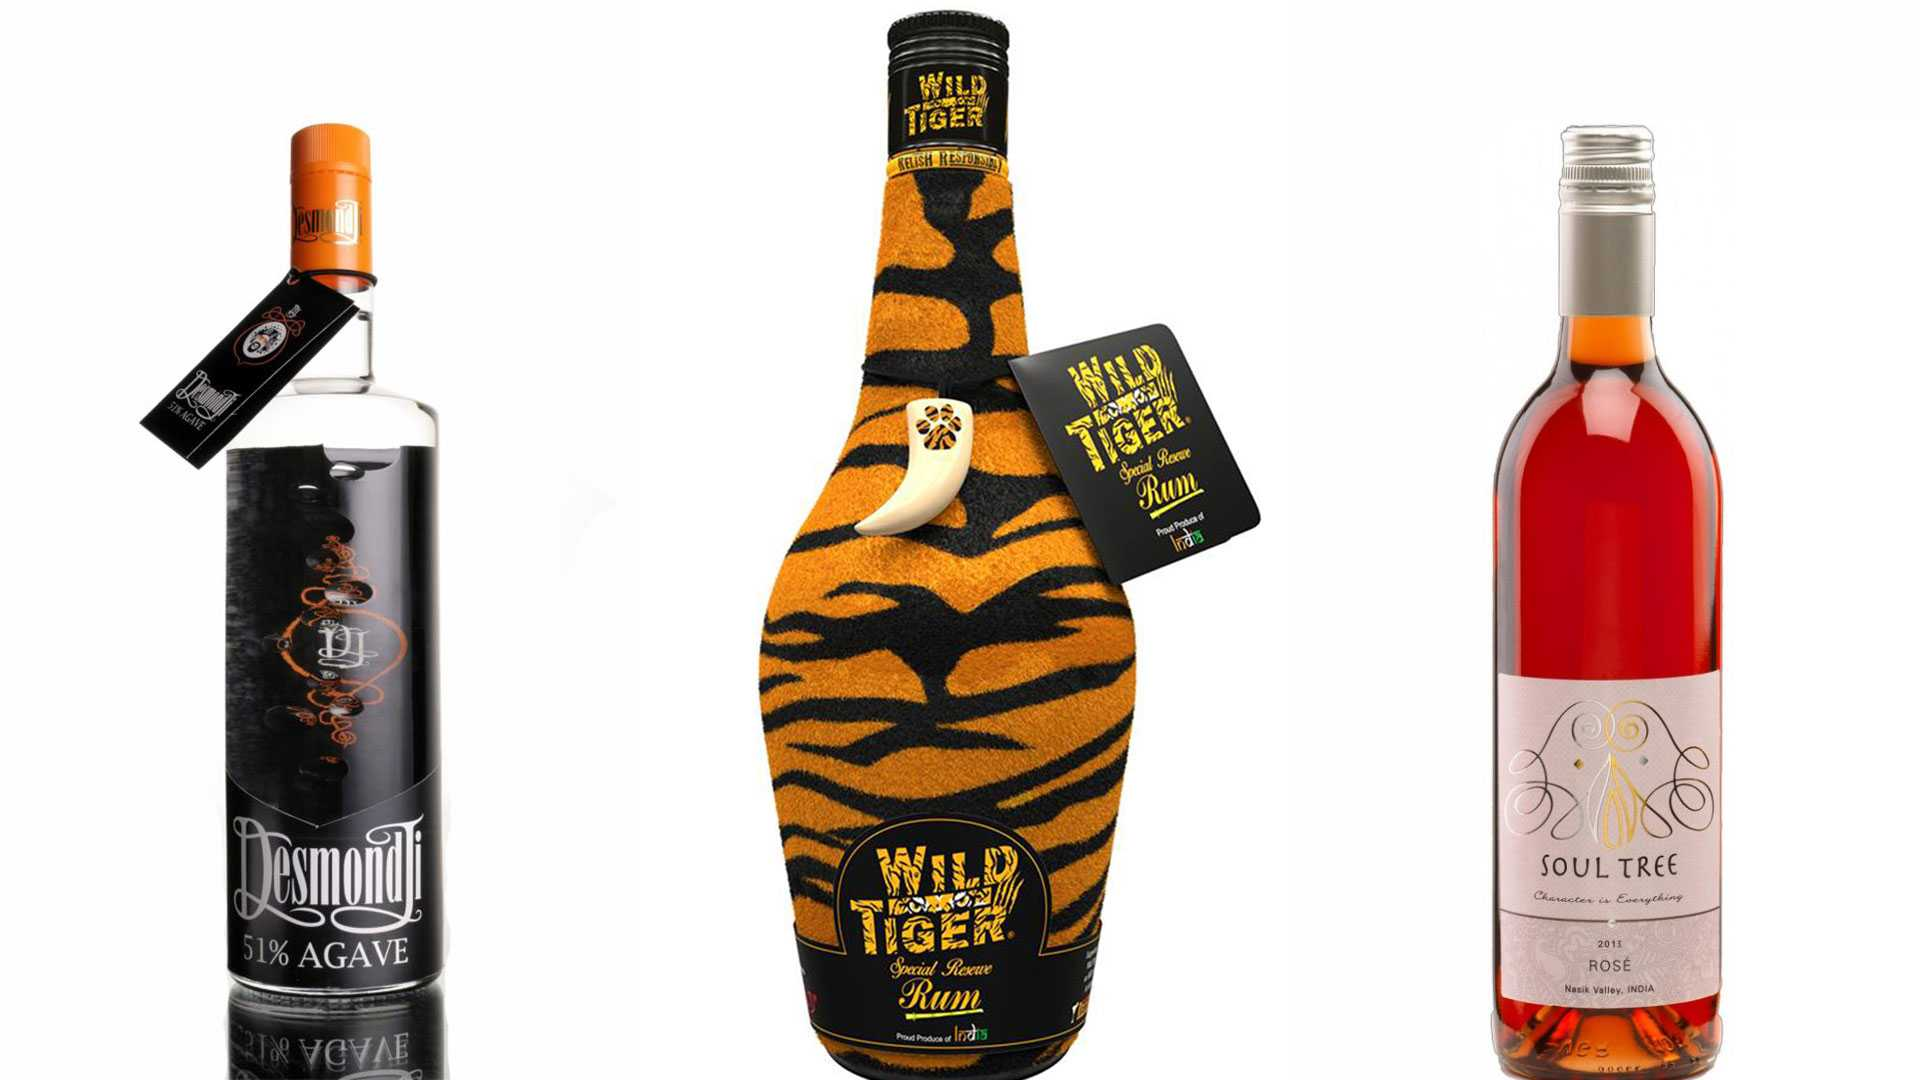 5 Indian artisanal alcohol brands you should know photo